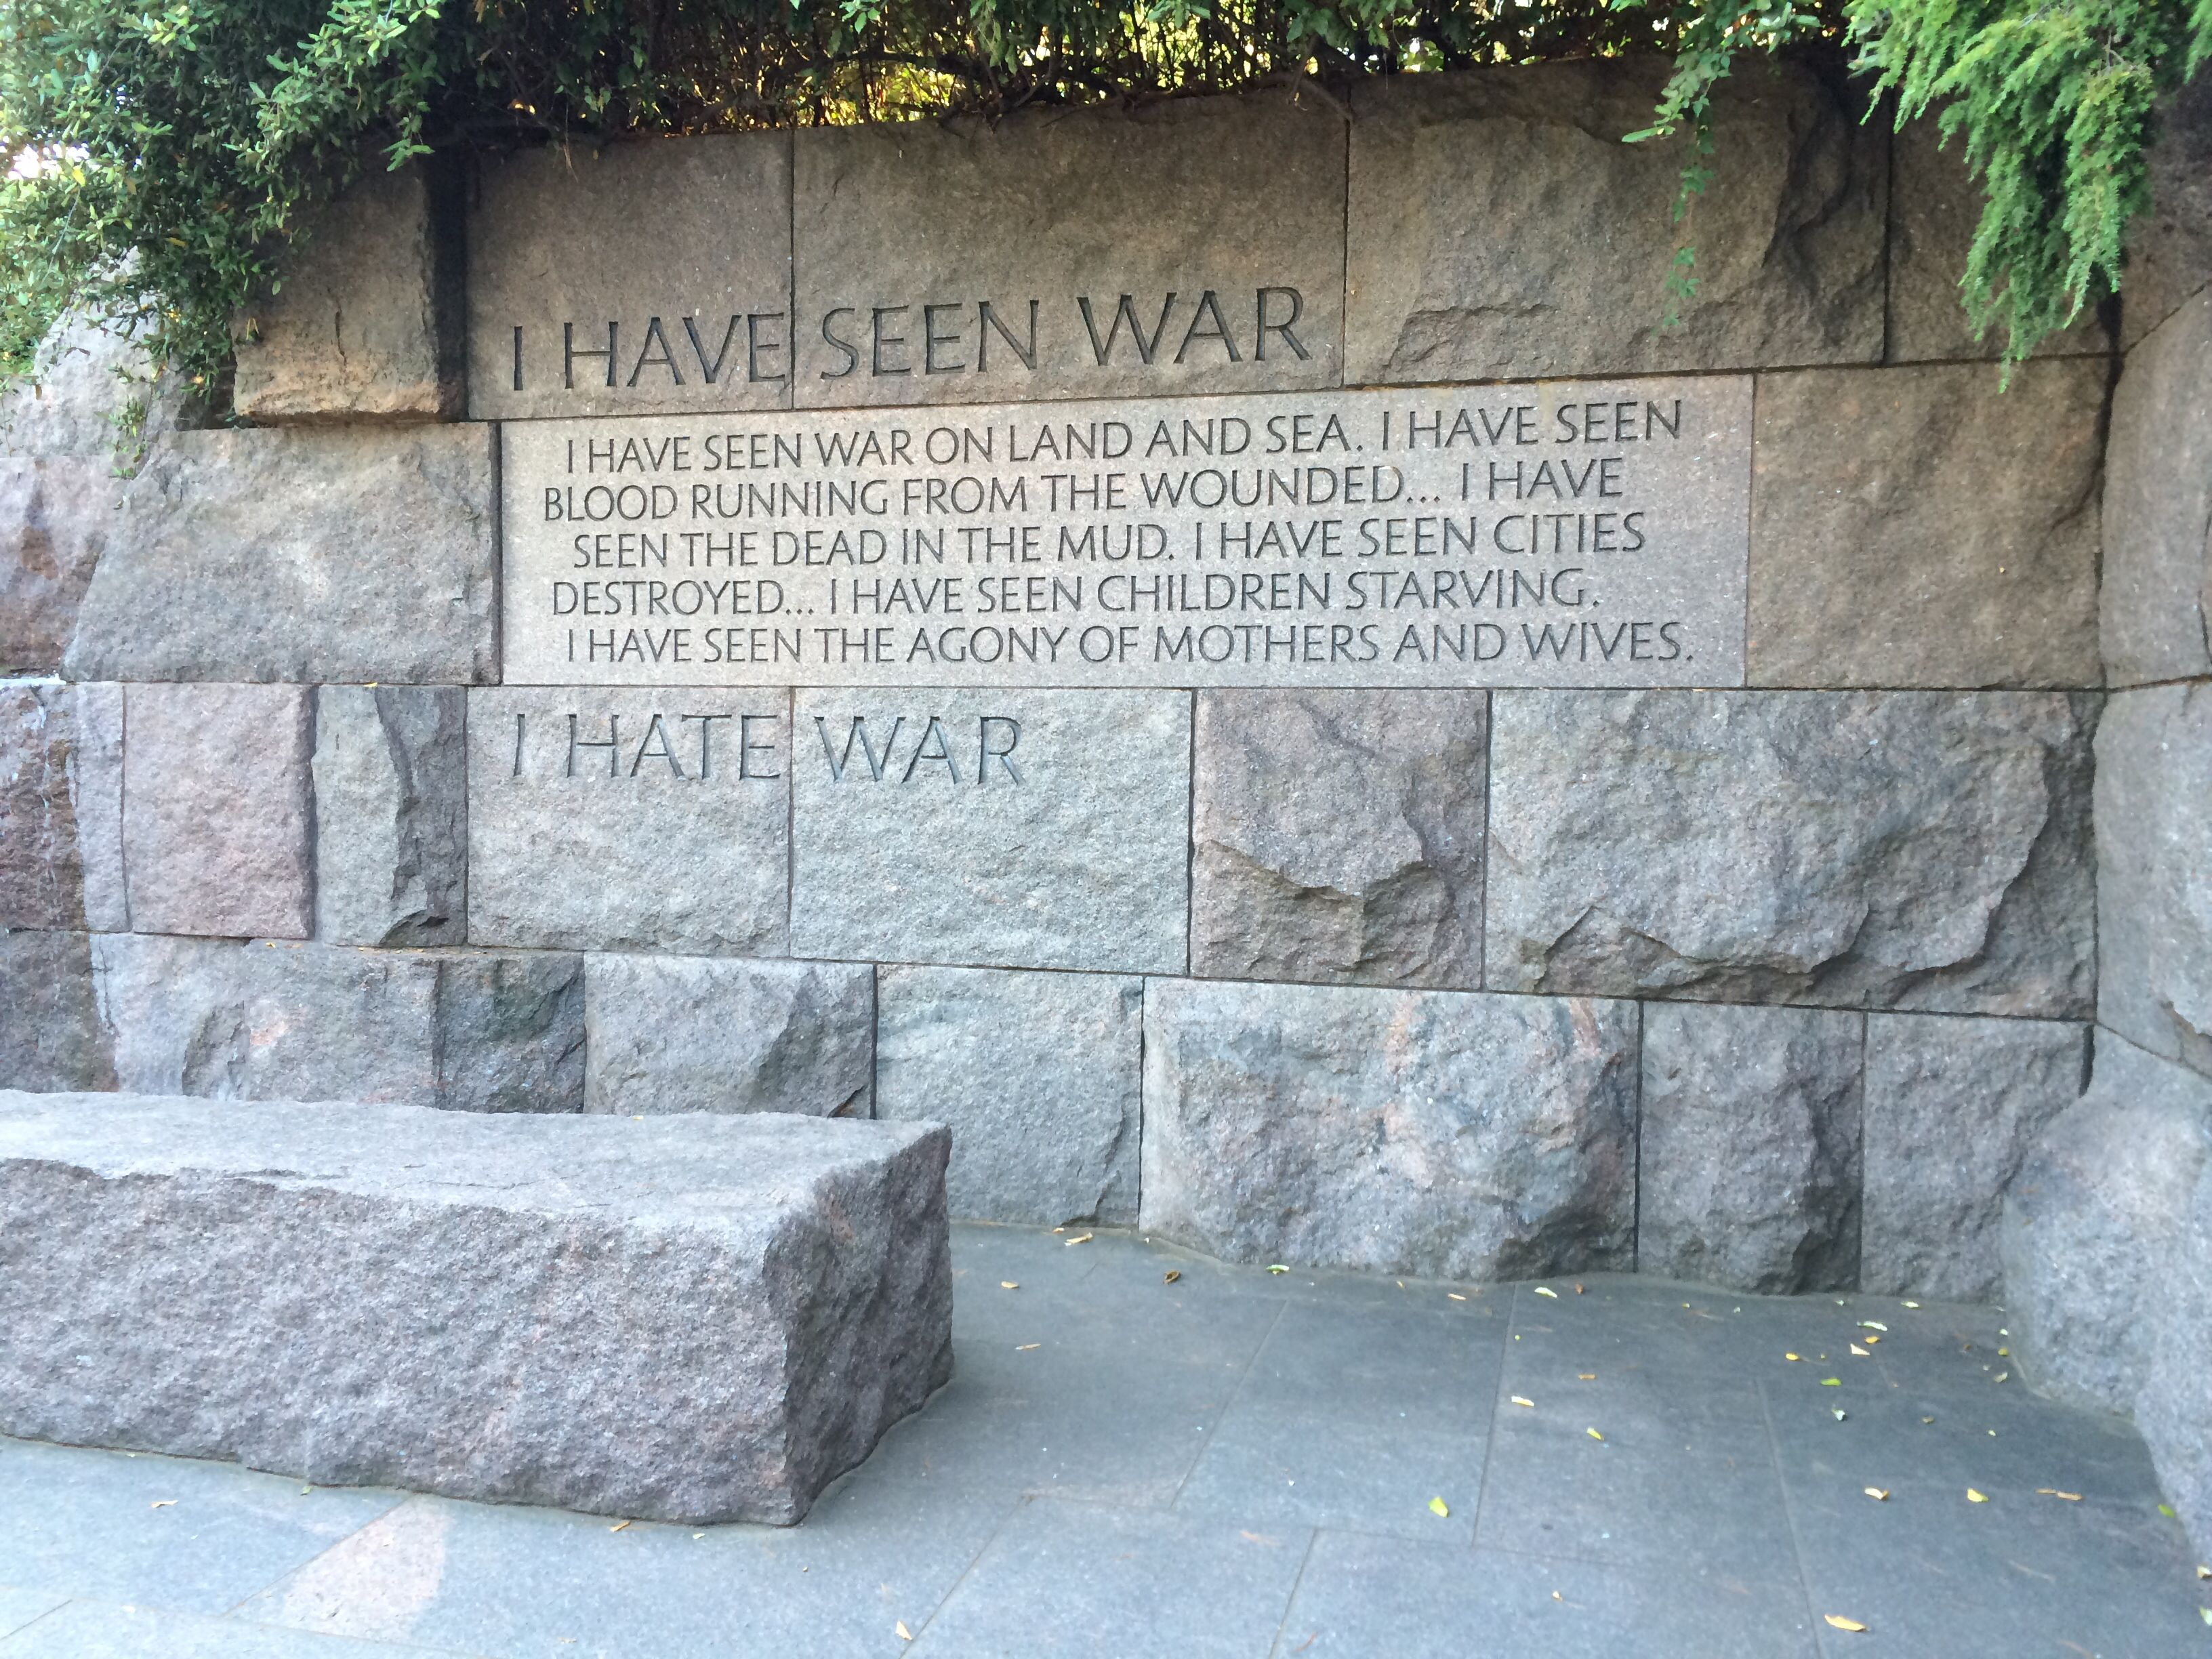 fdrs war message Fdr speaks to a nation in crisis, march 4, 1933  it doesn't have to be war, though it could be, for example, an economic depression.